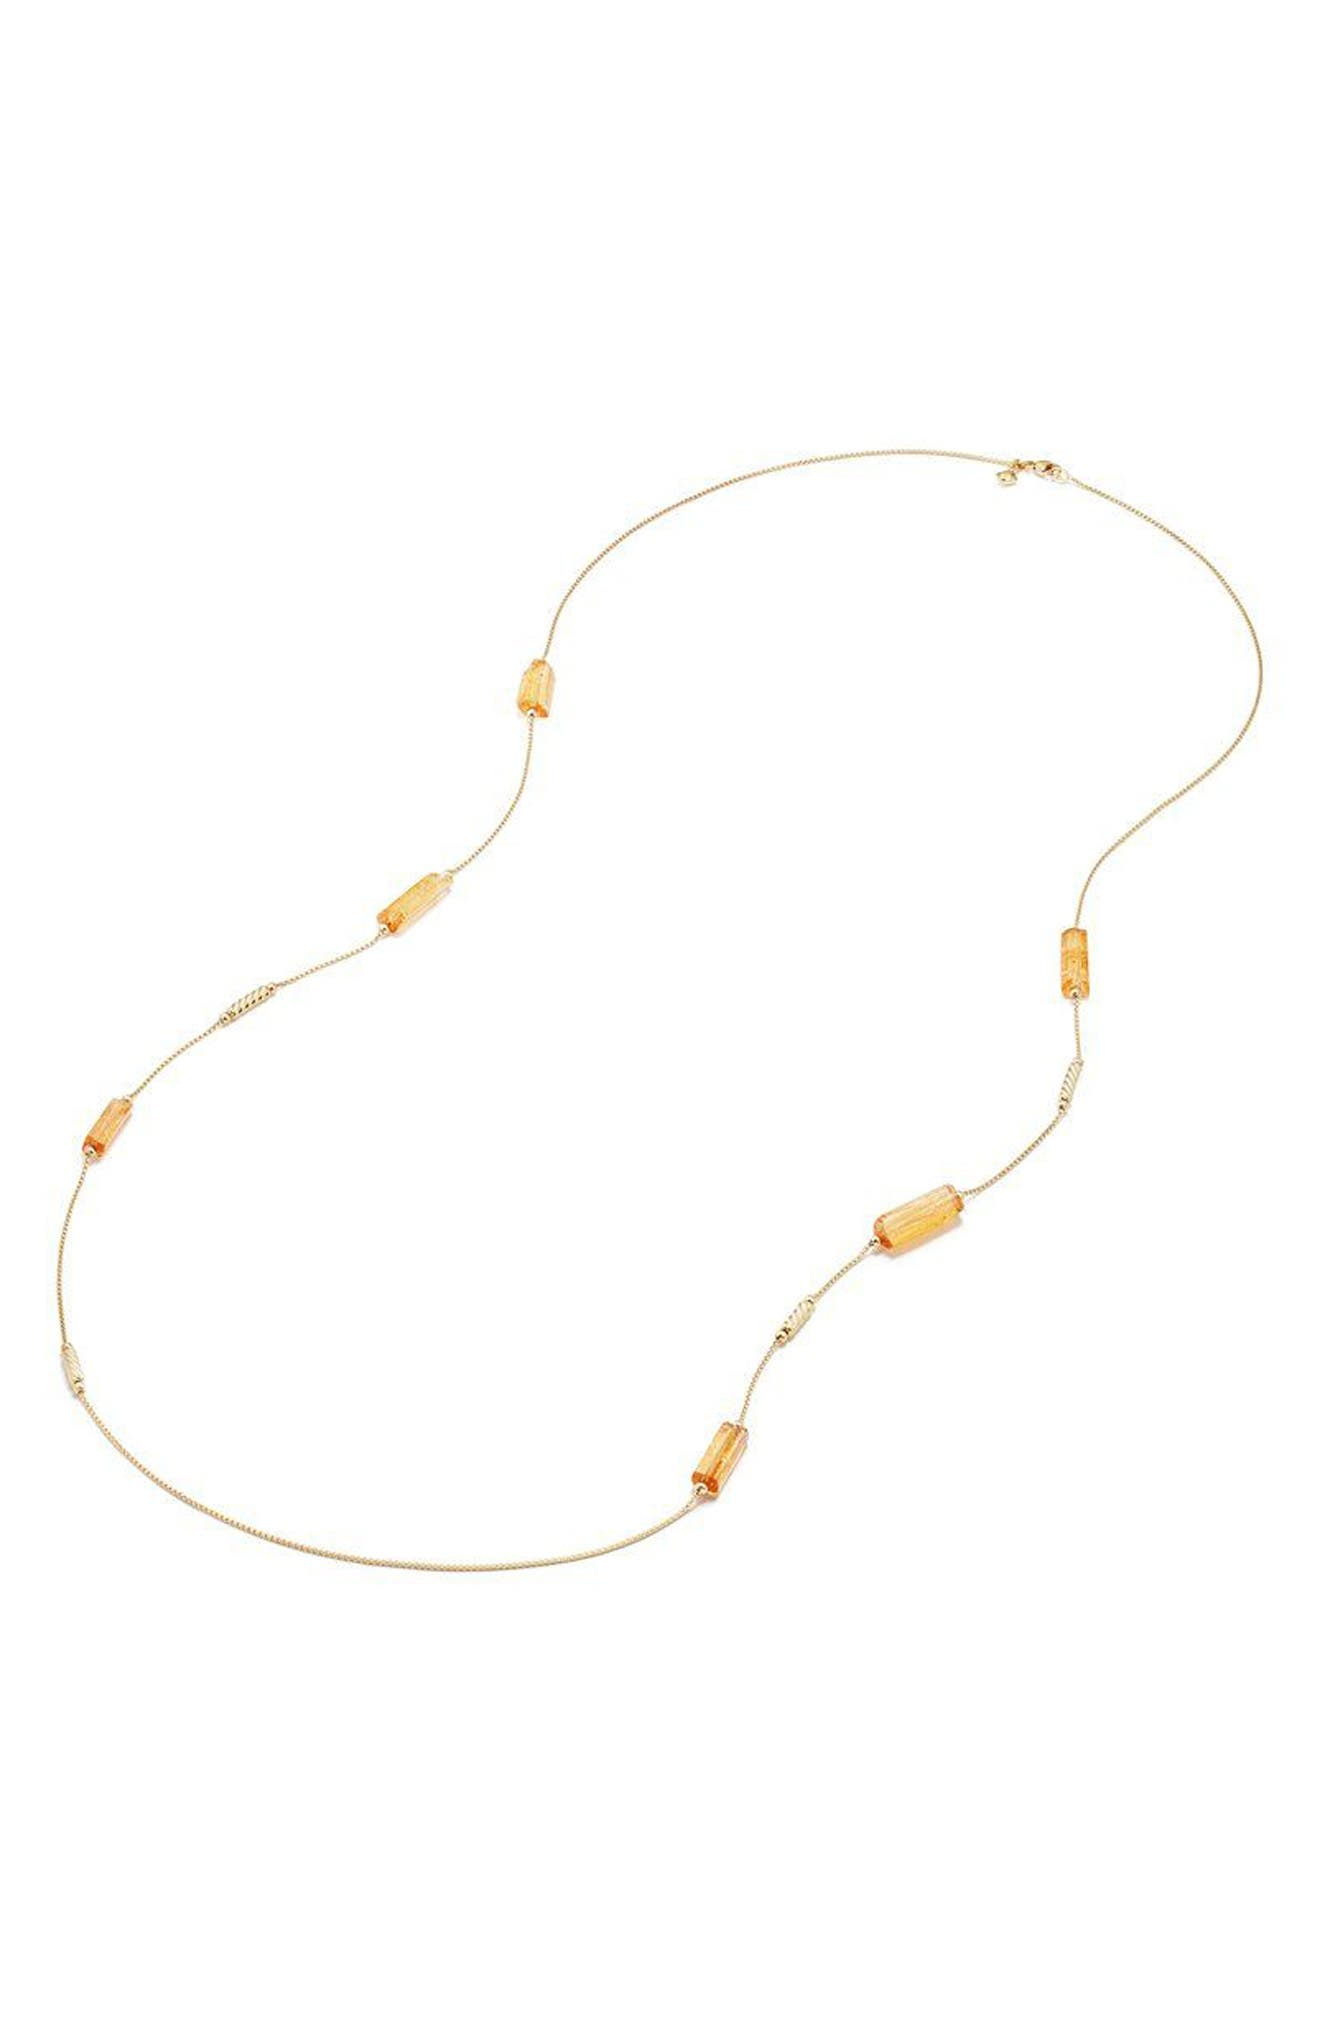 Fine Bead Imperial Topaz Chain Necklace,                             Alternate thumbnail 2, color,                             Gold/ Imperial Topaz